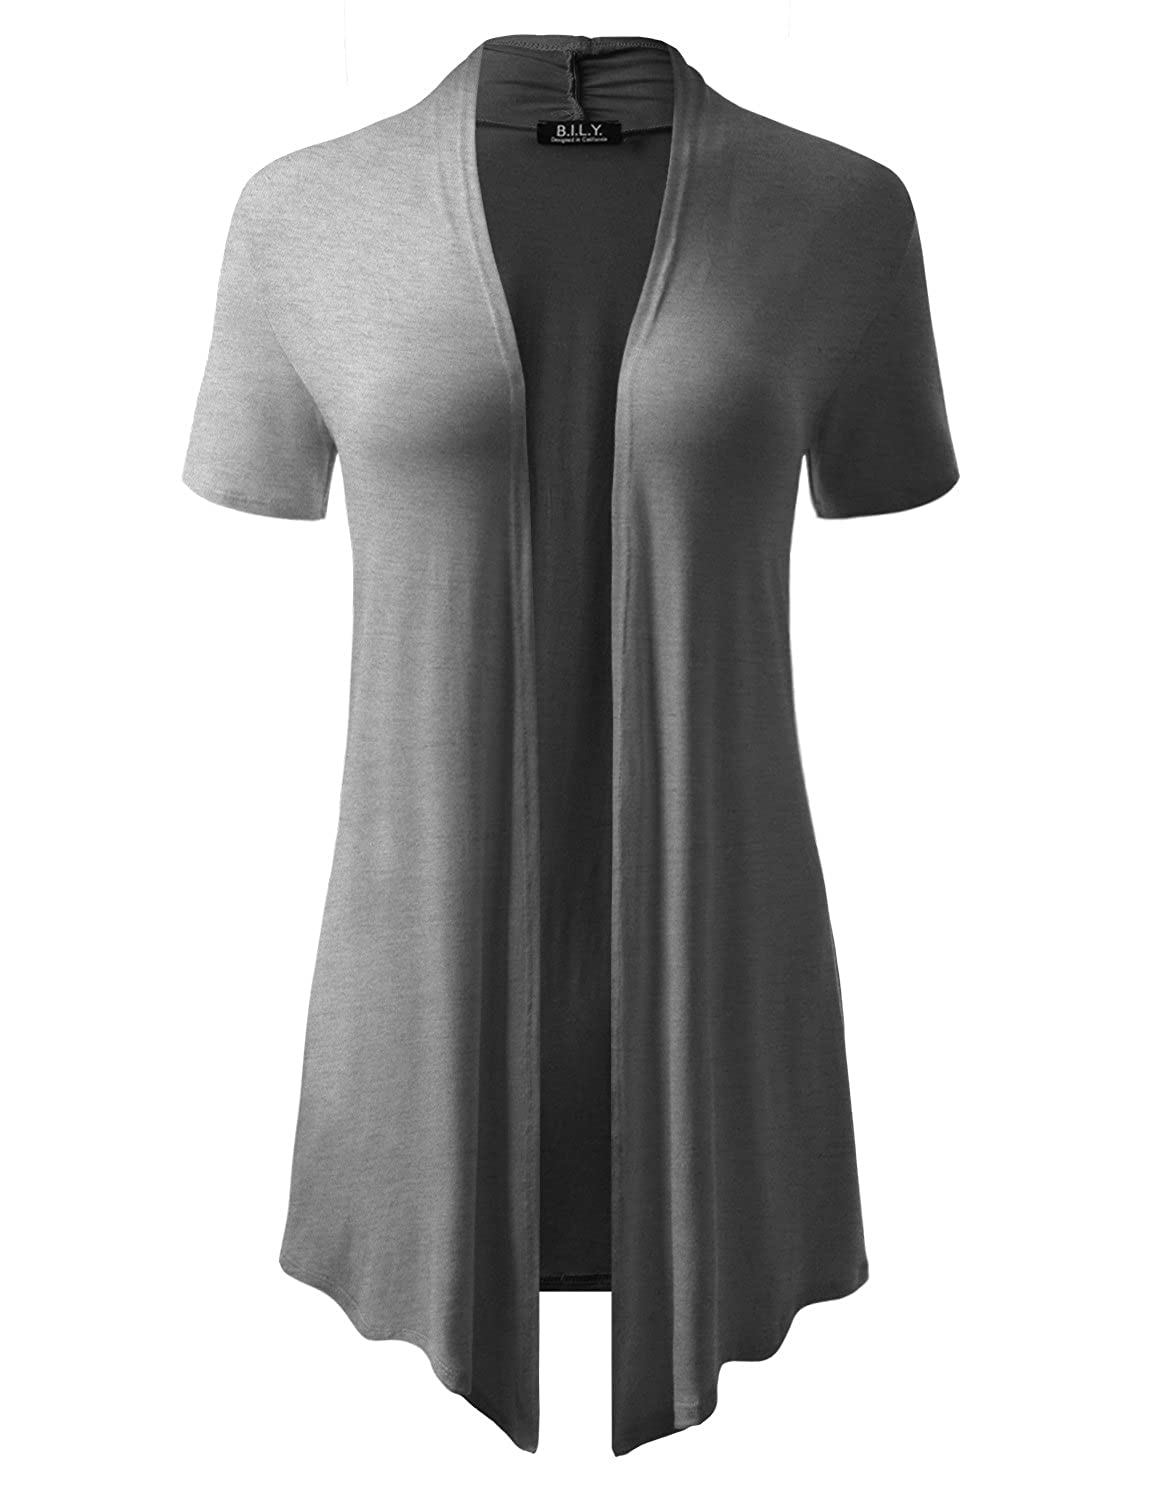 BH B.I.L.Y USA Women's ShortSleeve Open Front Drape Cardigan with Side Pockets Heather Grey Large